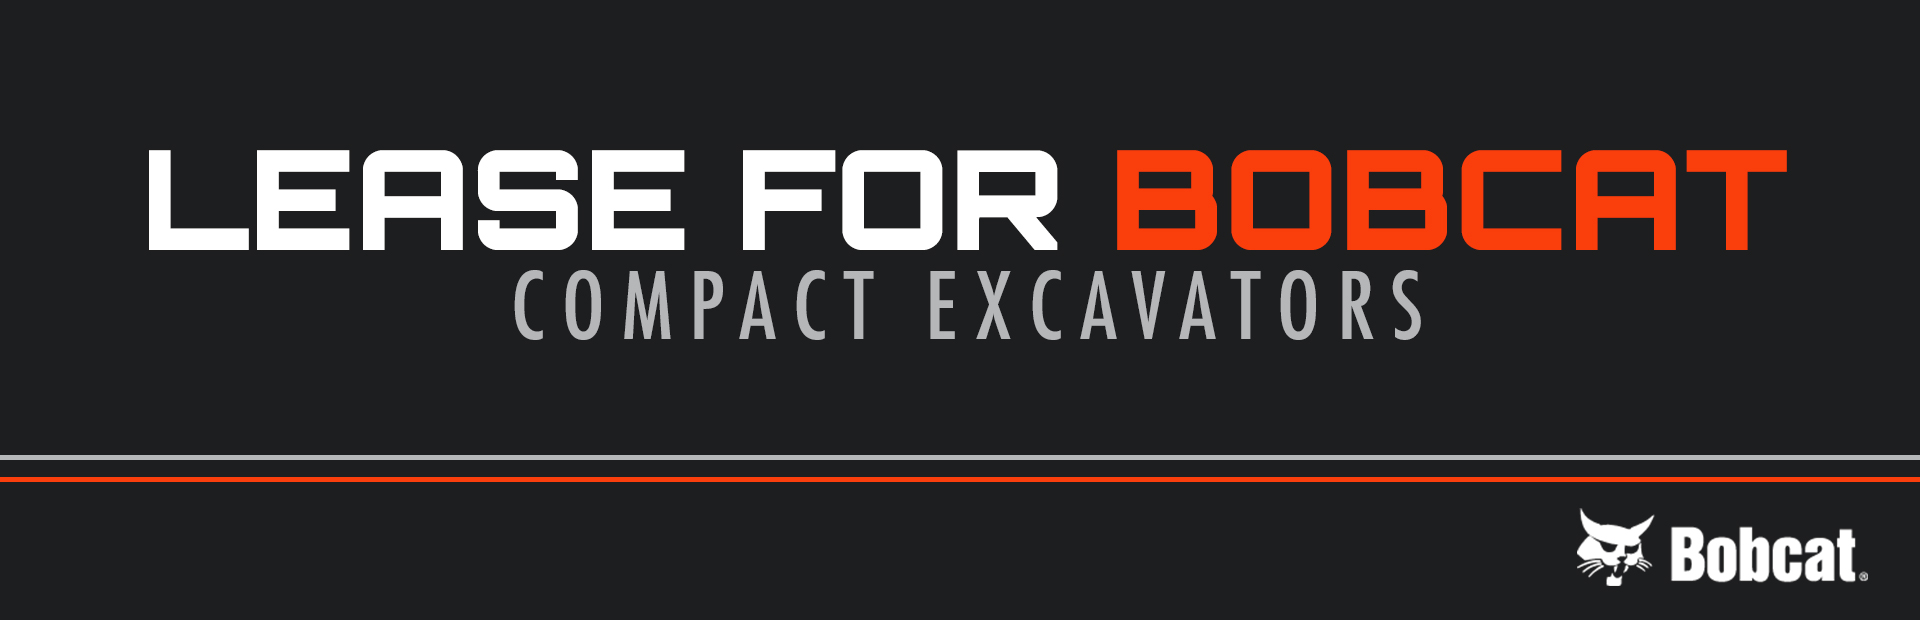 Bobcat: Lease For Bobcat Compact Excavators